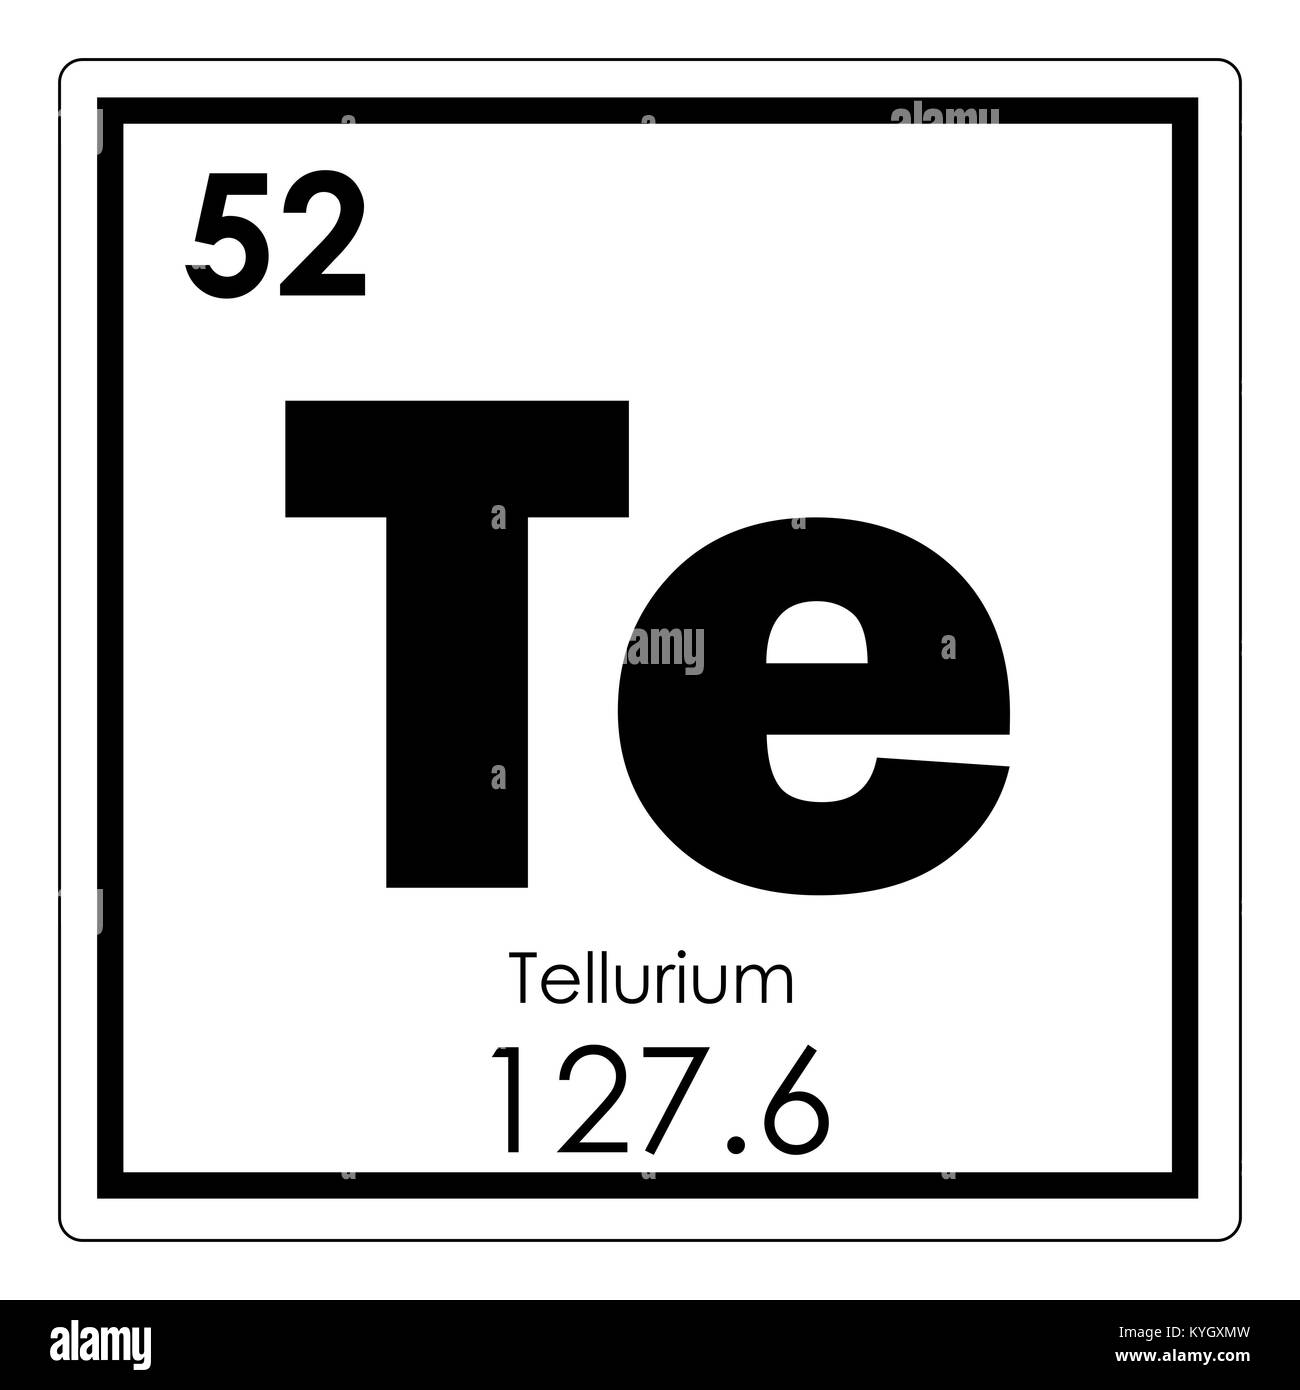 Tellurium chemical element periodic table science symbol stock photo tellurium chemical element periodic table science symbol urtaz Image collections